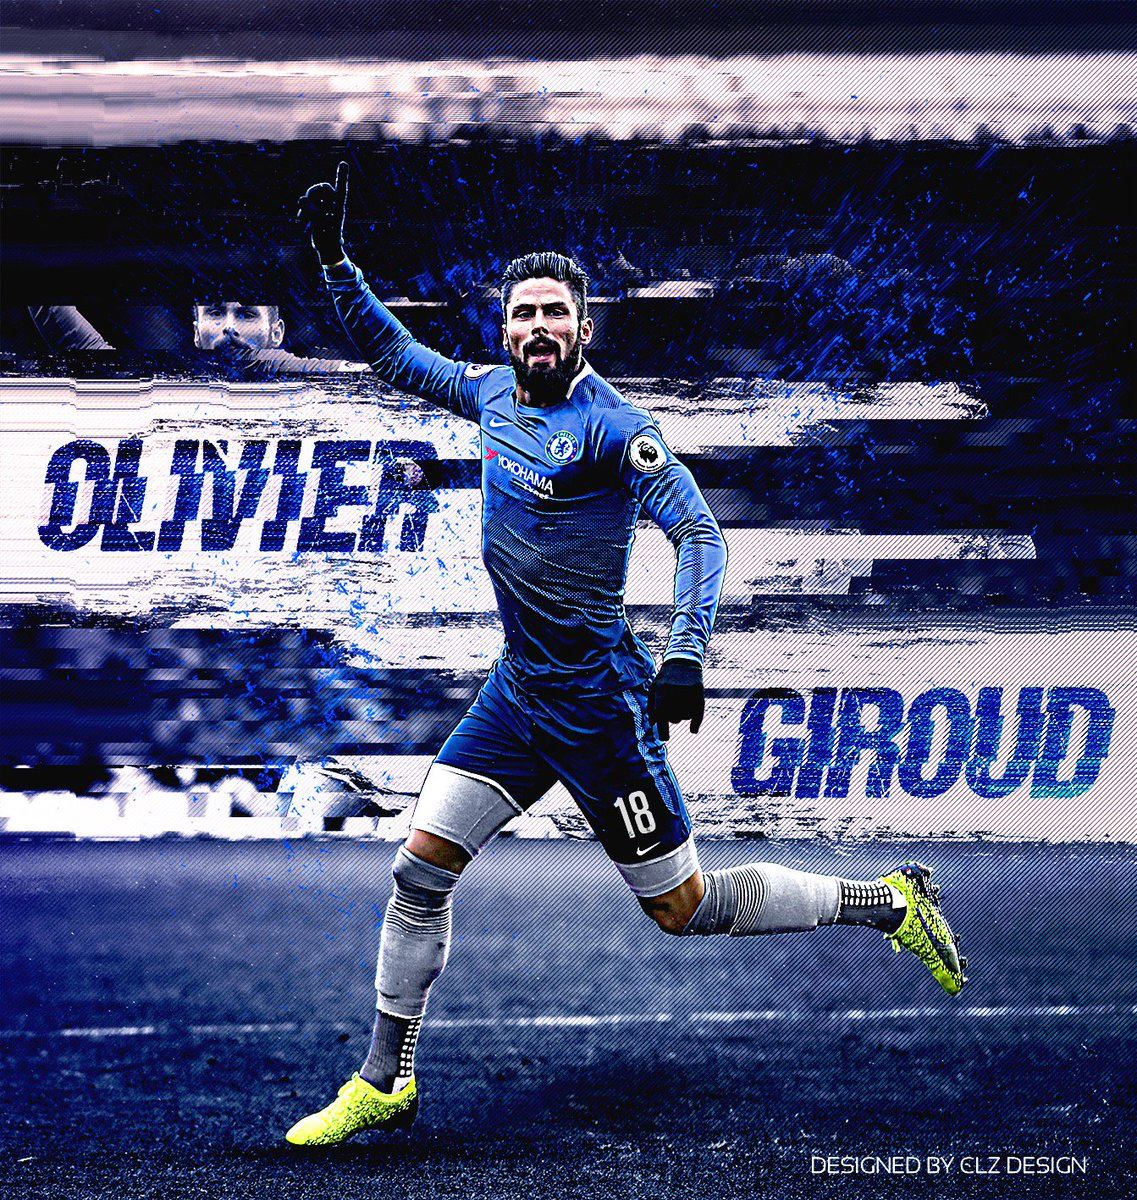 Image result for olivier giroud design hd image